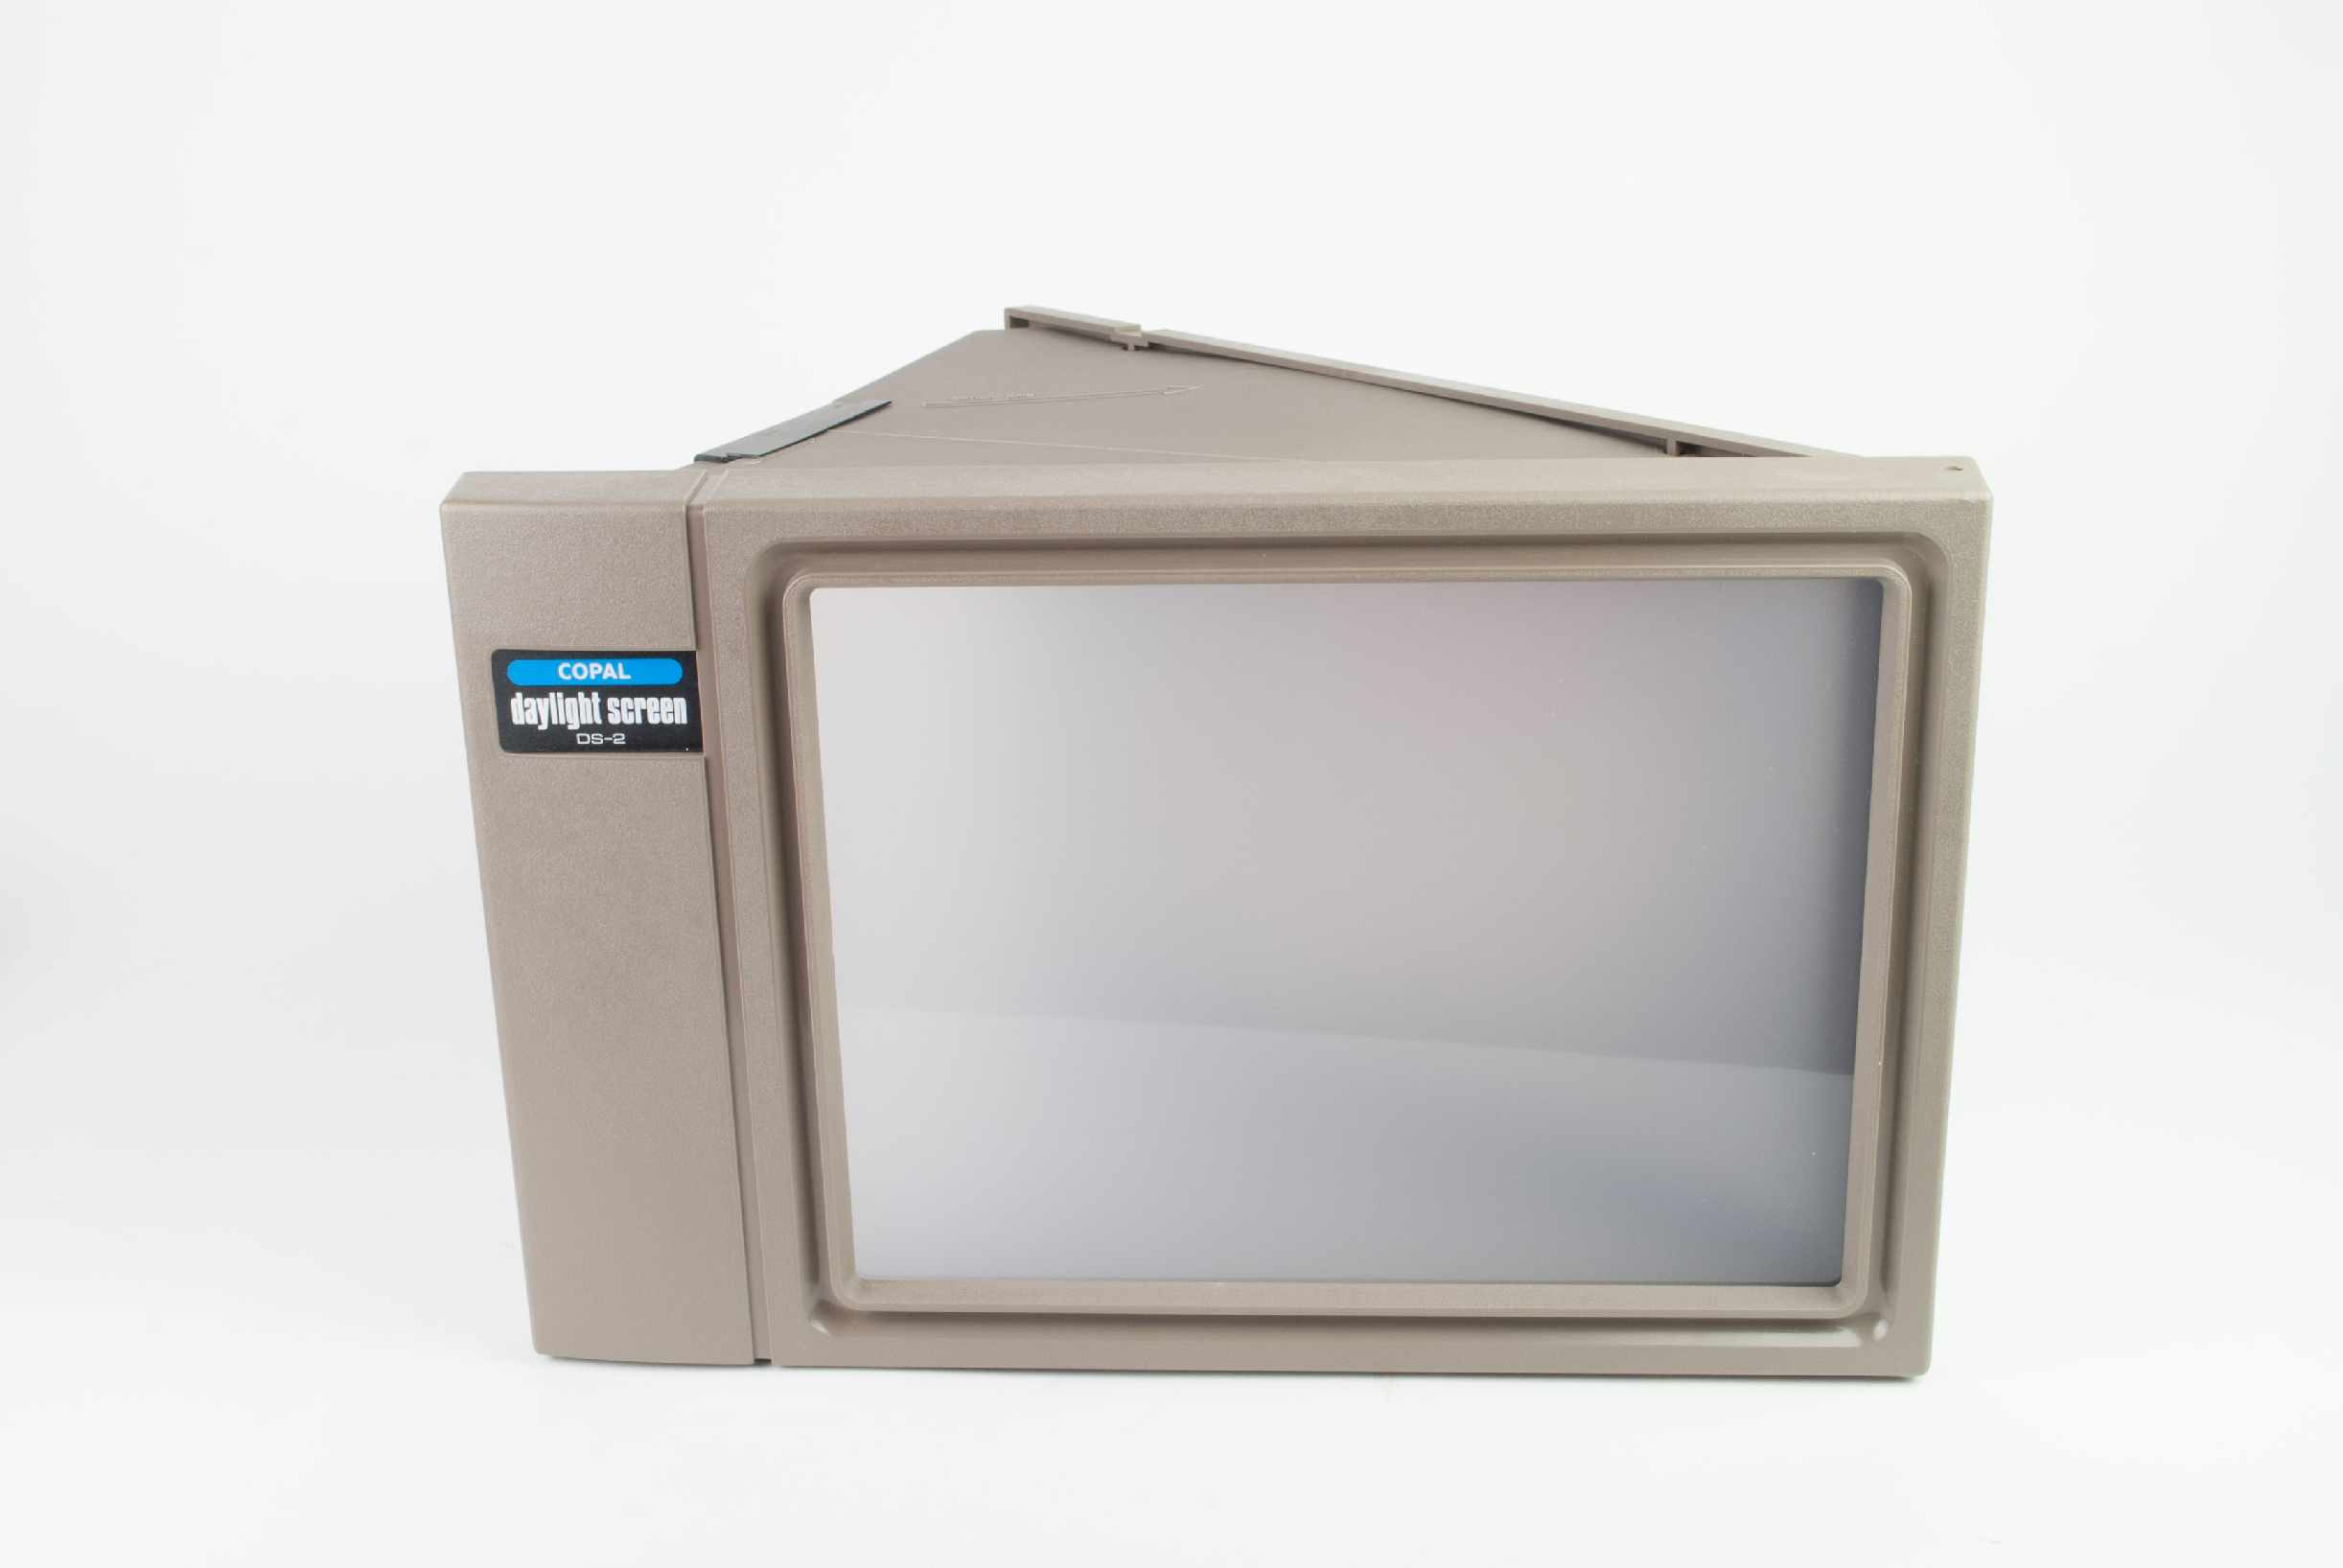 Copal Daylight Screen DS-2 (used)